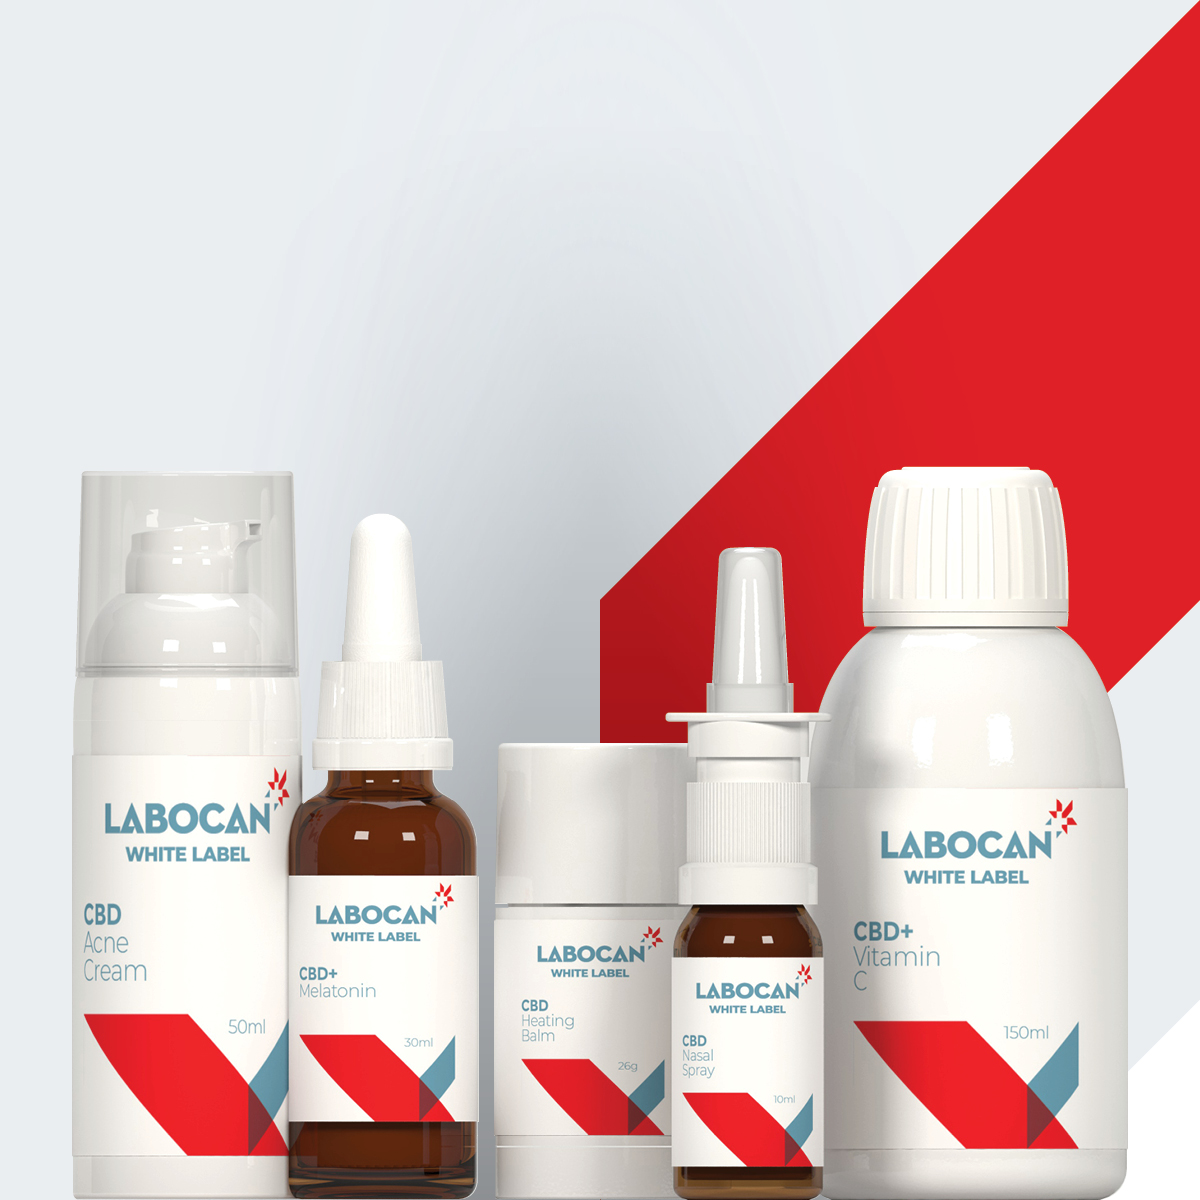 Labocan White label CBD products